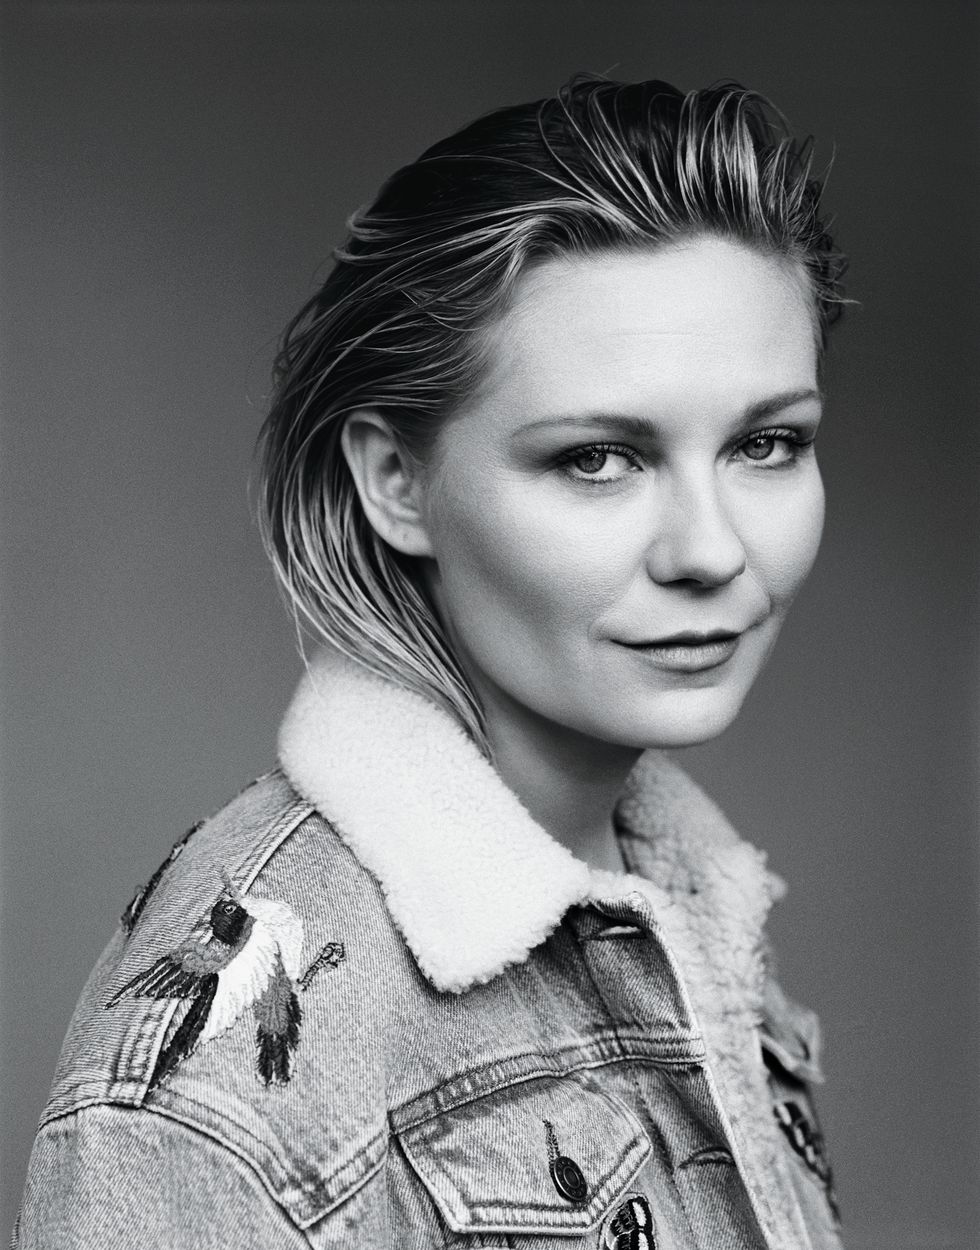 Black and white image of Kirsten Dunst smiling slyly at the camera.